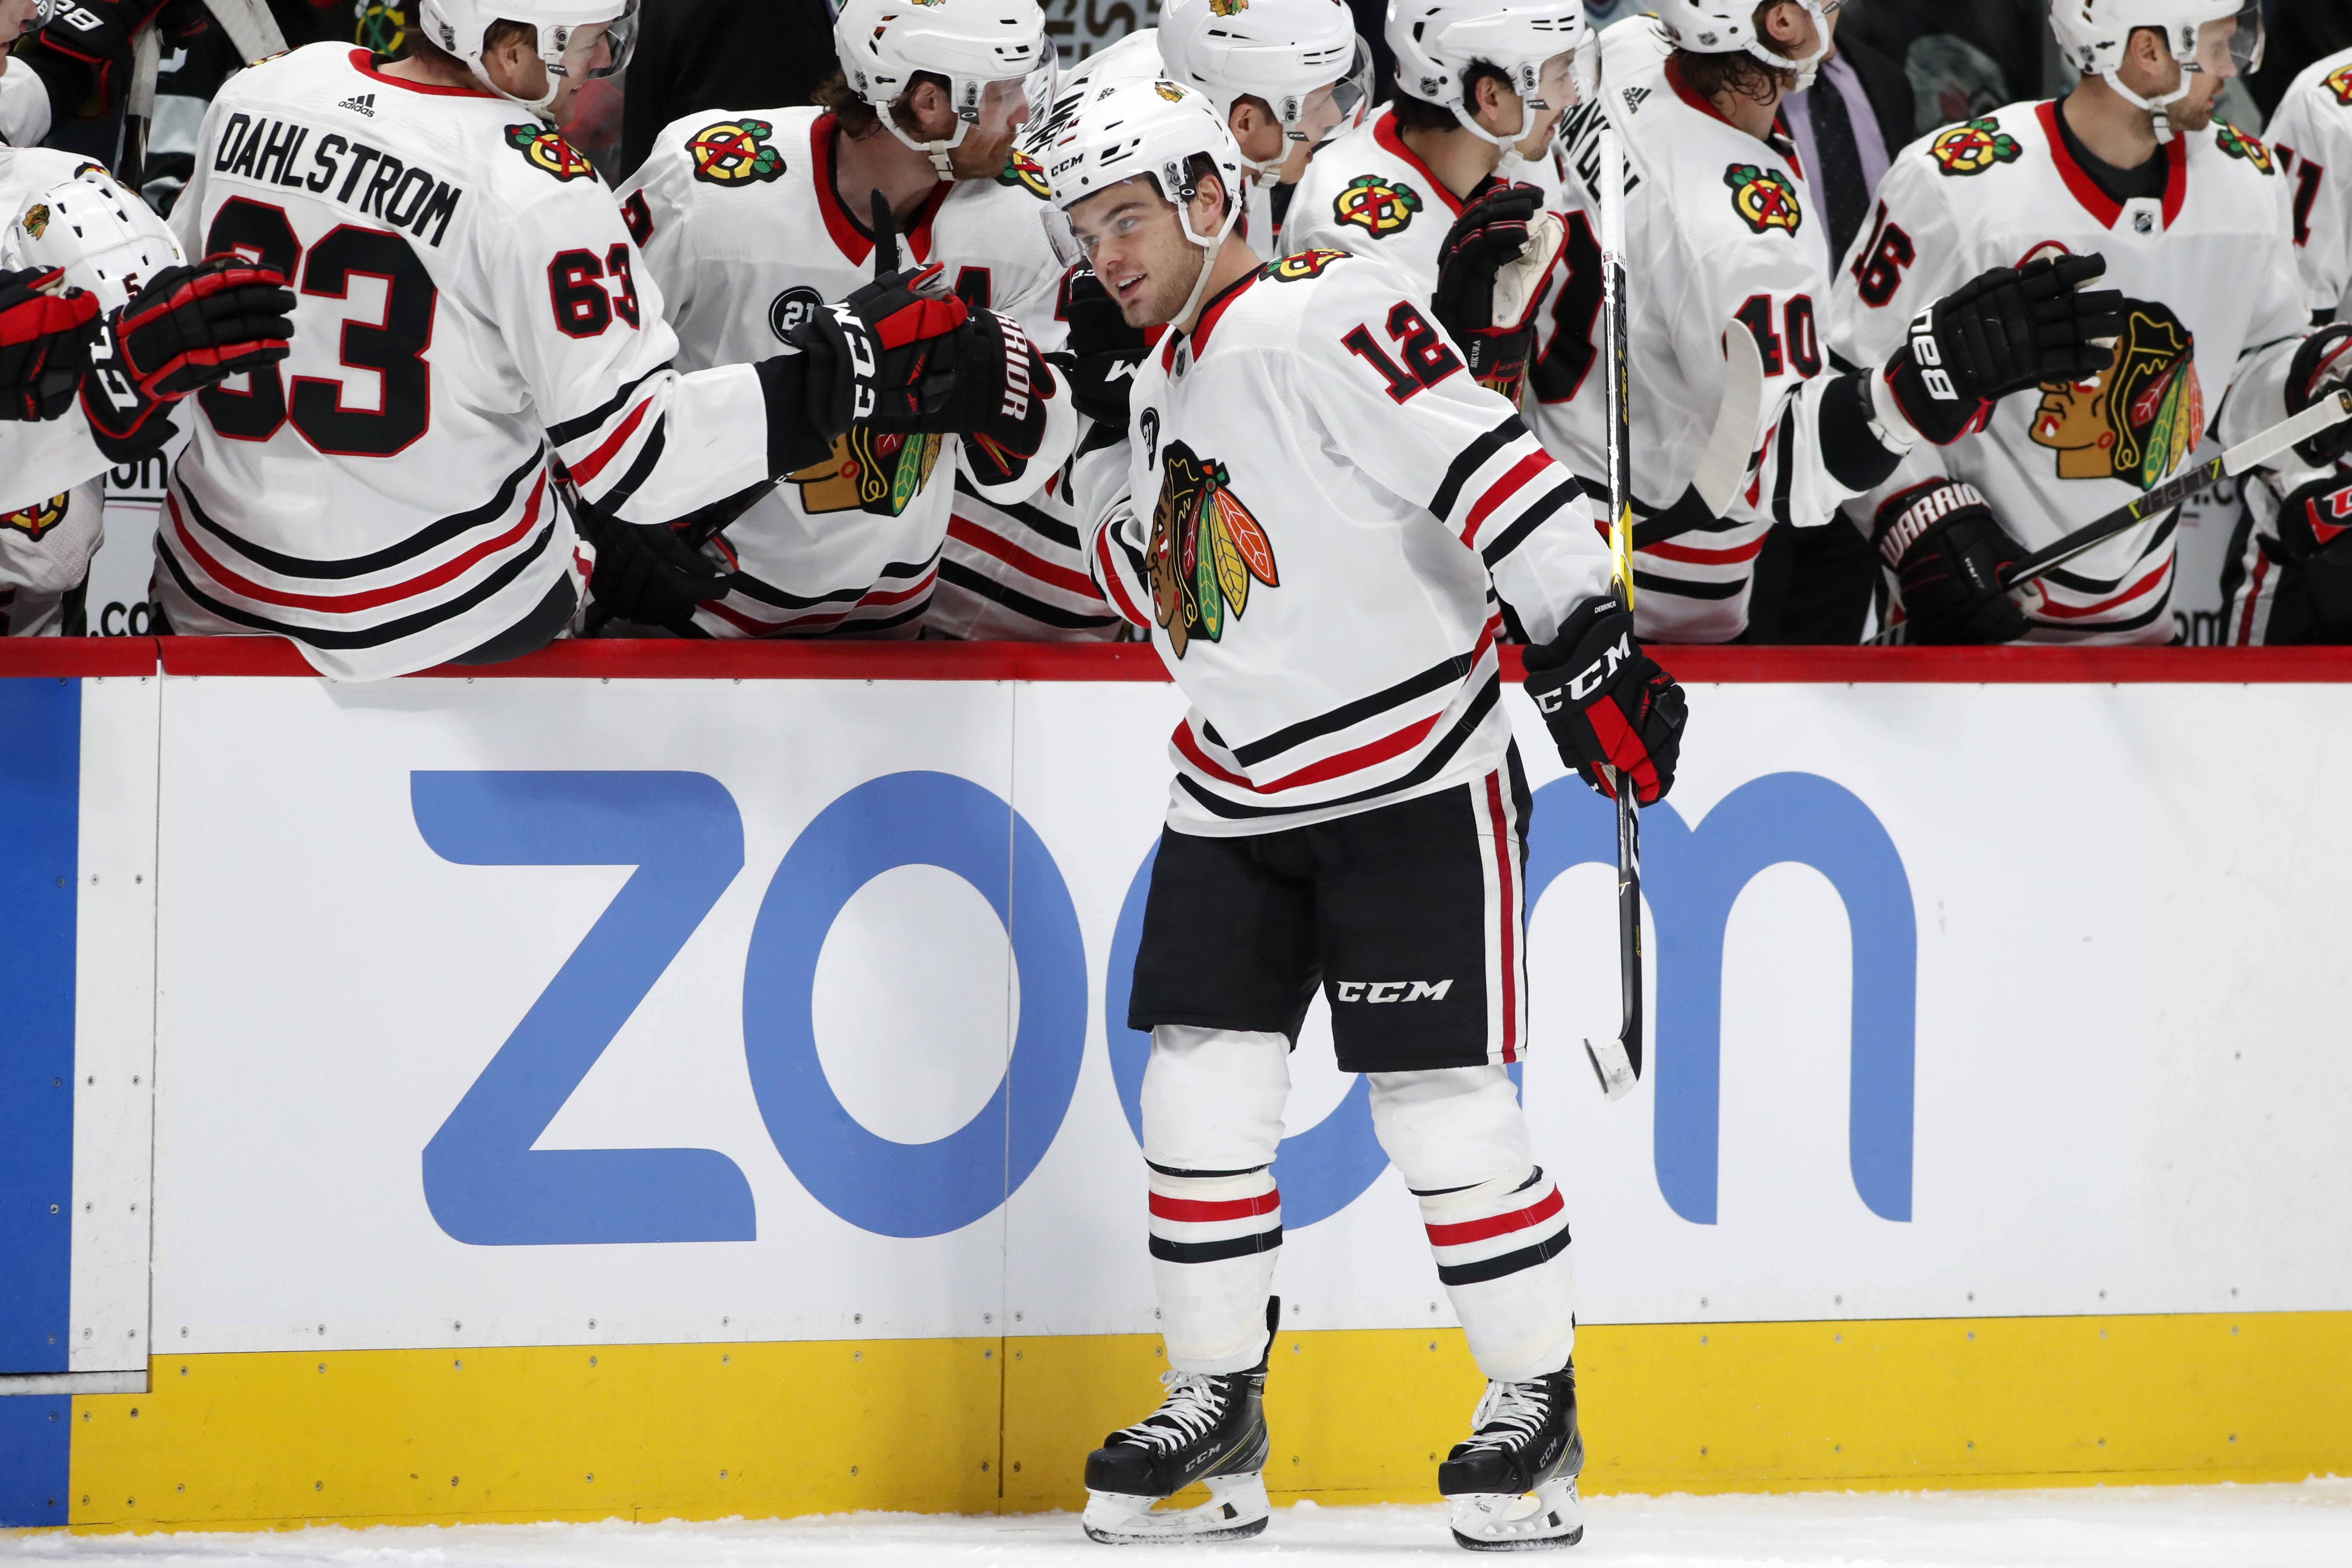 Chicago Blackhawks left wing Alex DeBrincat, front, is congratulated as he passes the team box after scoring a goal against the Colorado Avalanche in the first period of an NHL hockey game Saturday, Dec. 29, 2018, in Denver.